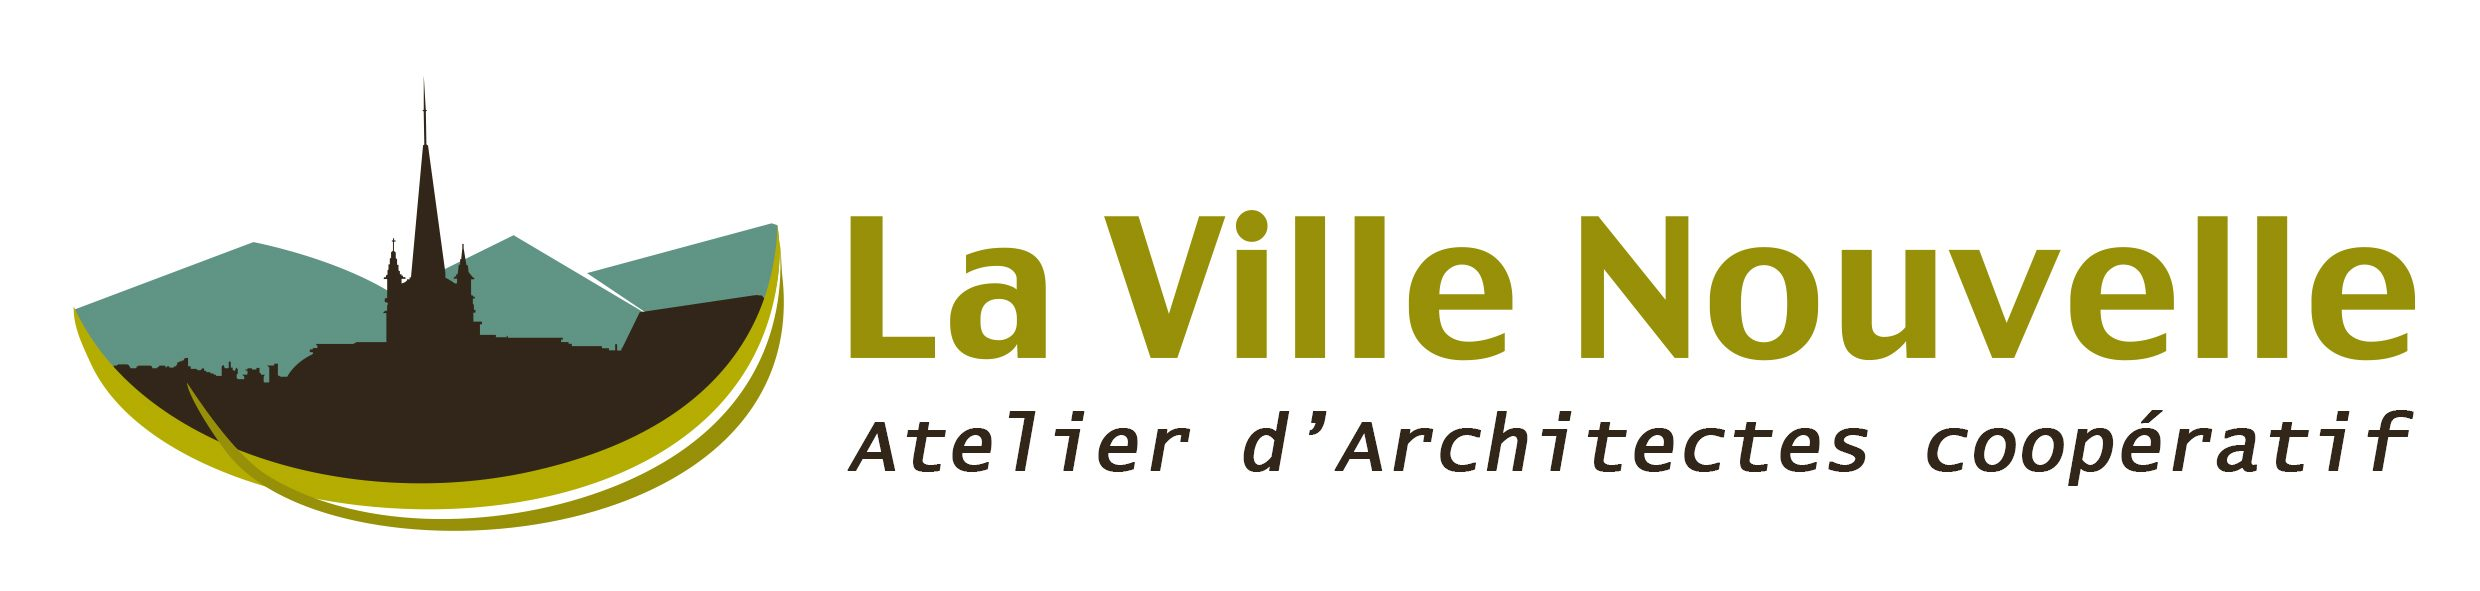 La Ville Nouvelle, Atelier d'architectes coopératif